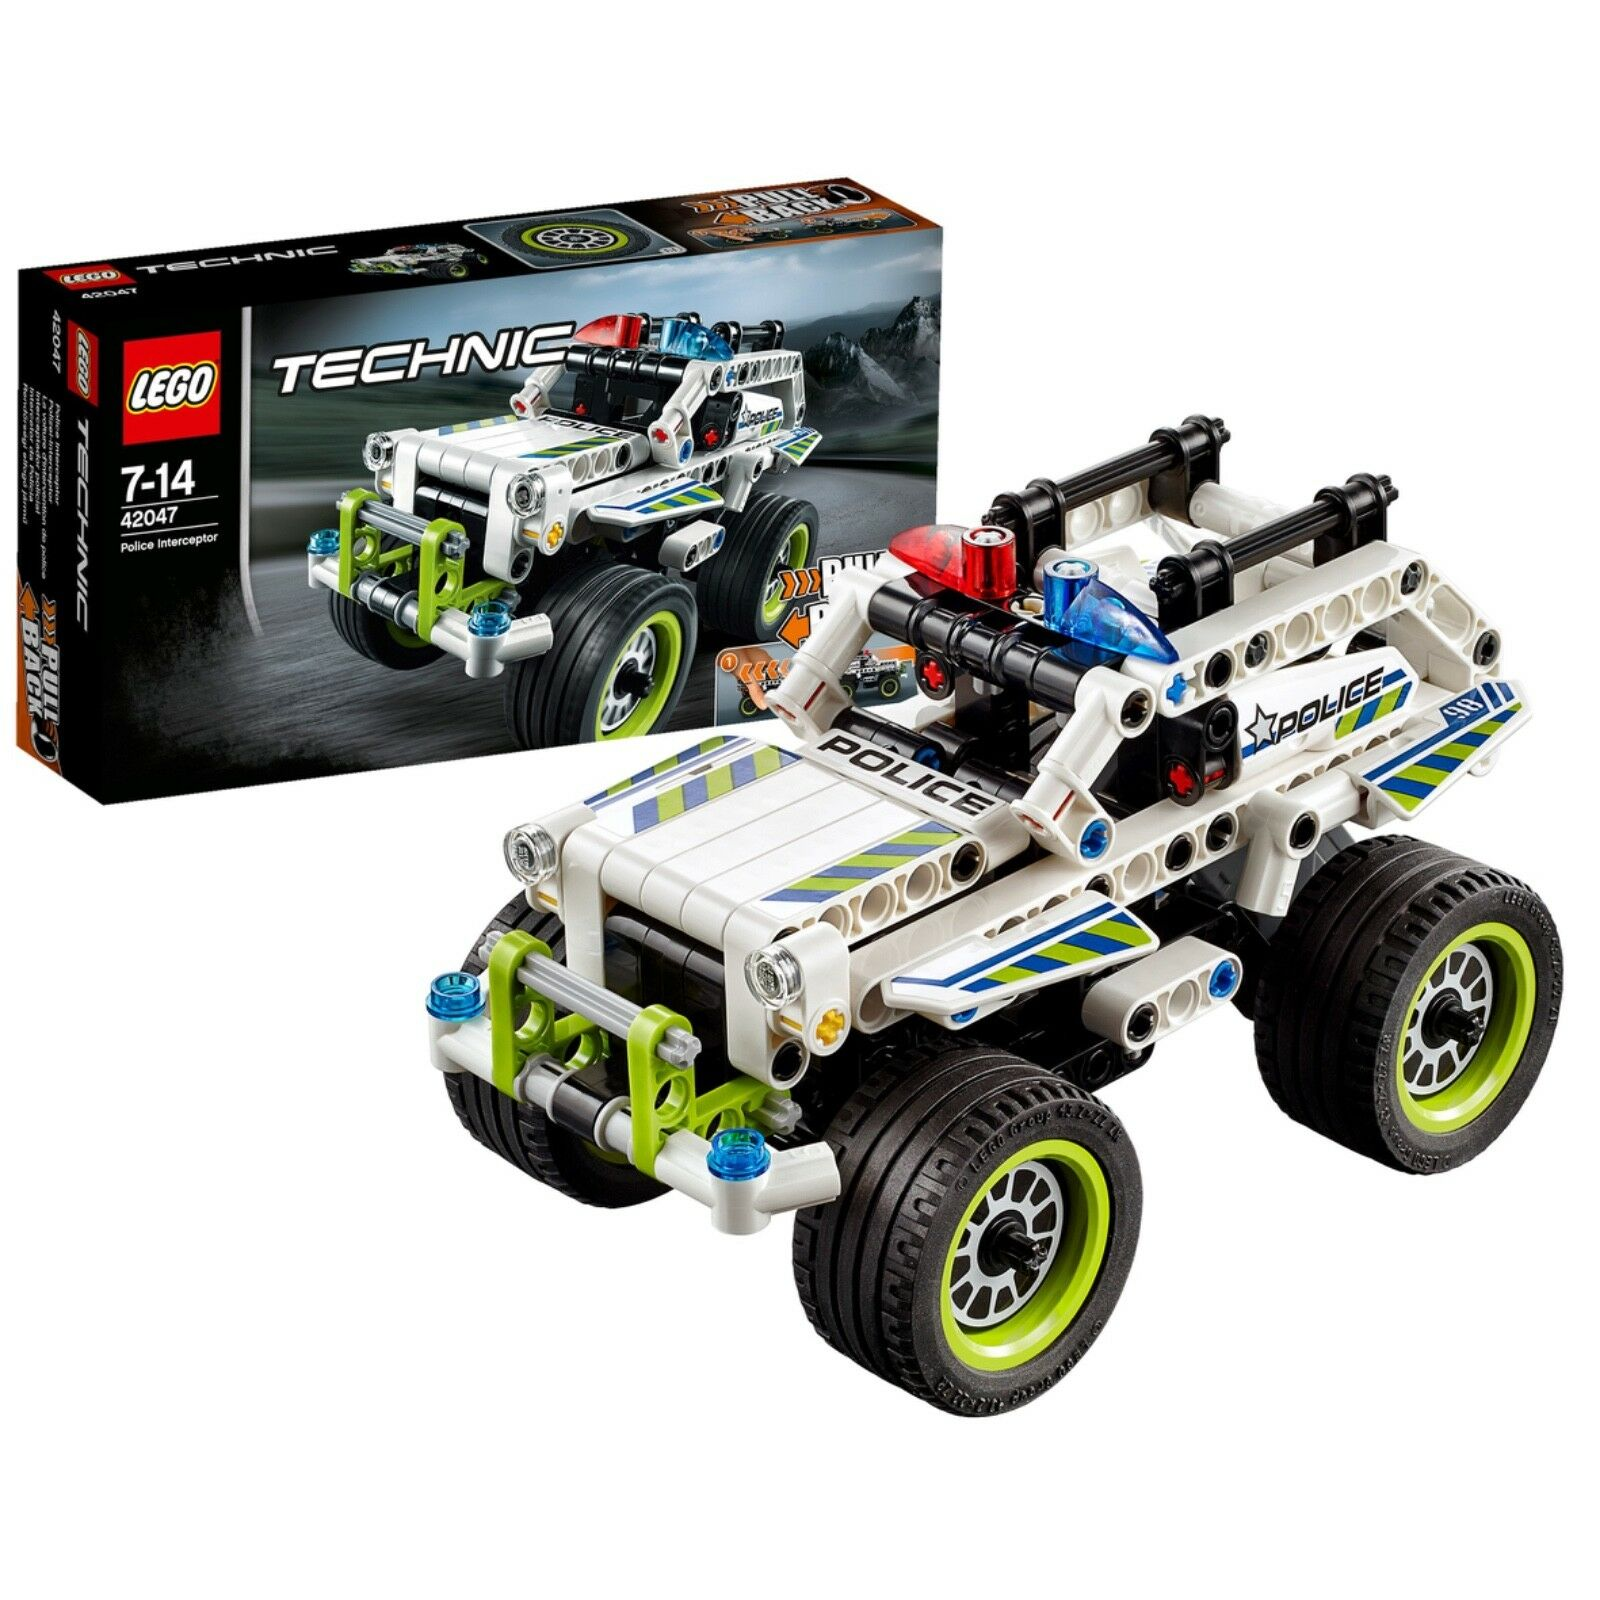 LEGO Technic (42047) Police Interceptor (Brand New & Factory Sealed)